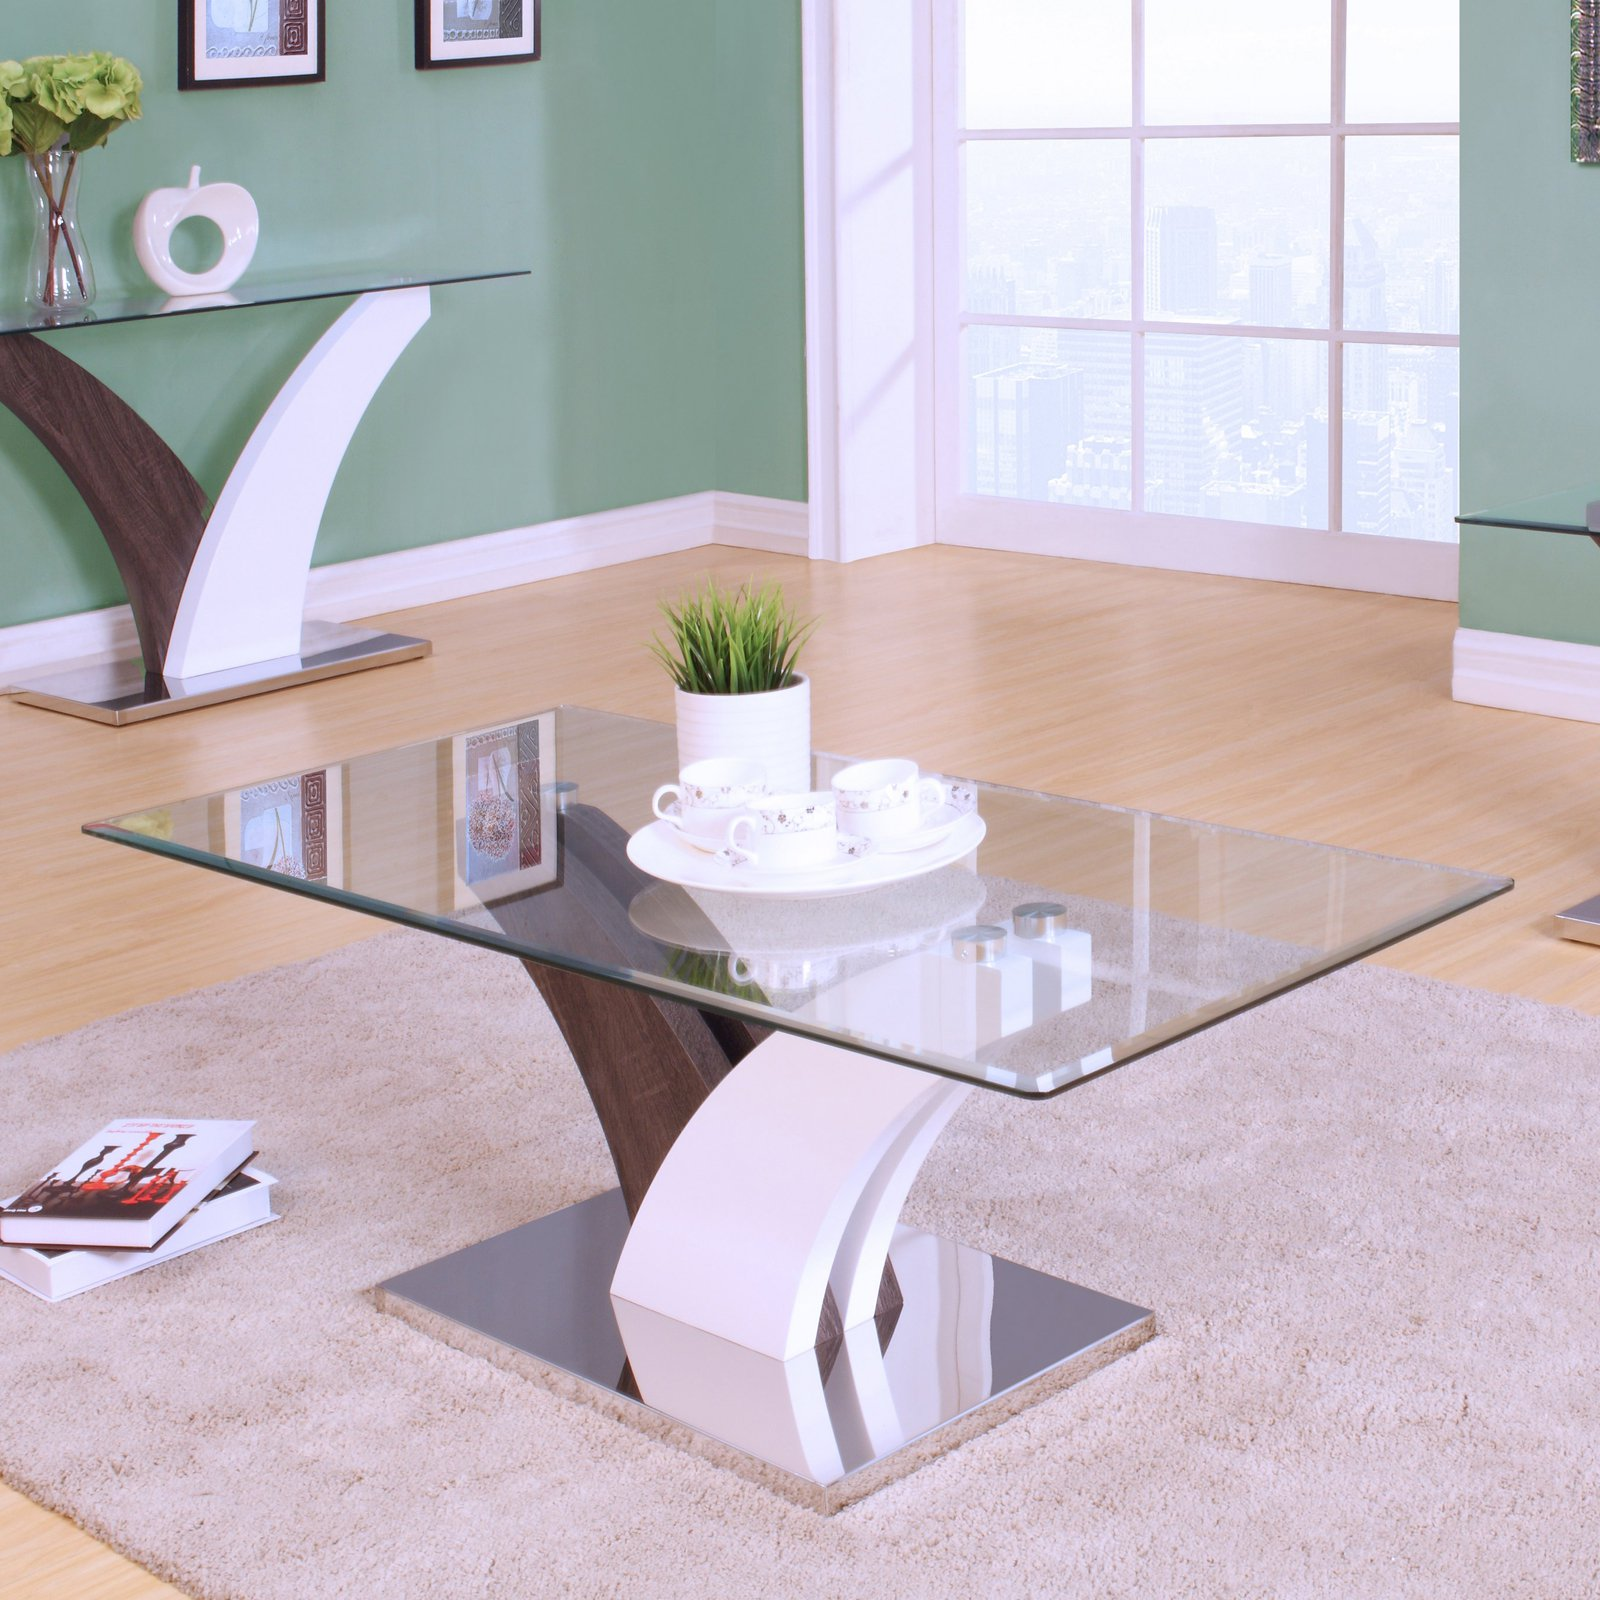 ACME Forest Coffee Table, Clear Glass, White & Walnut by Acme Furniture